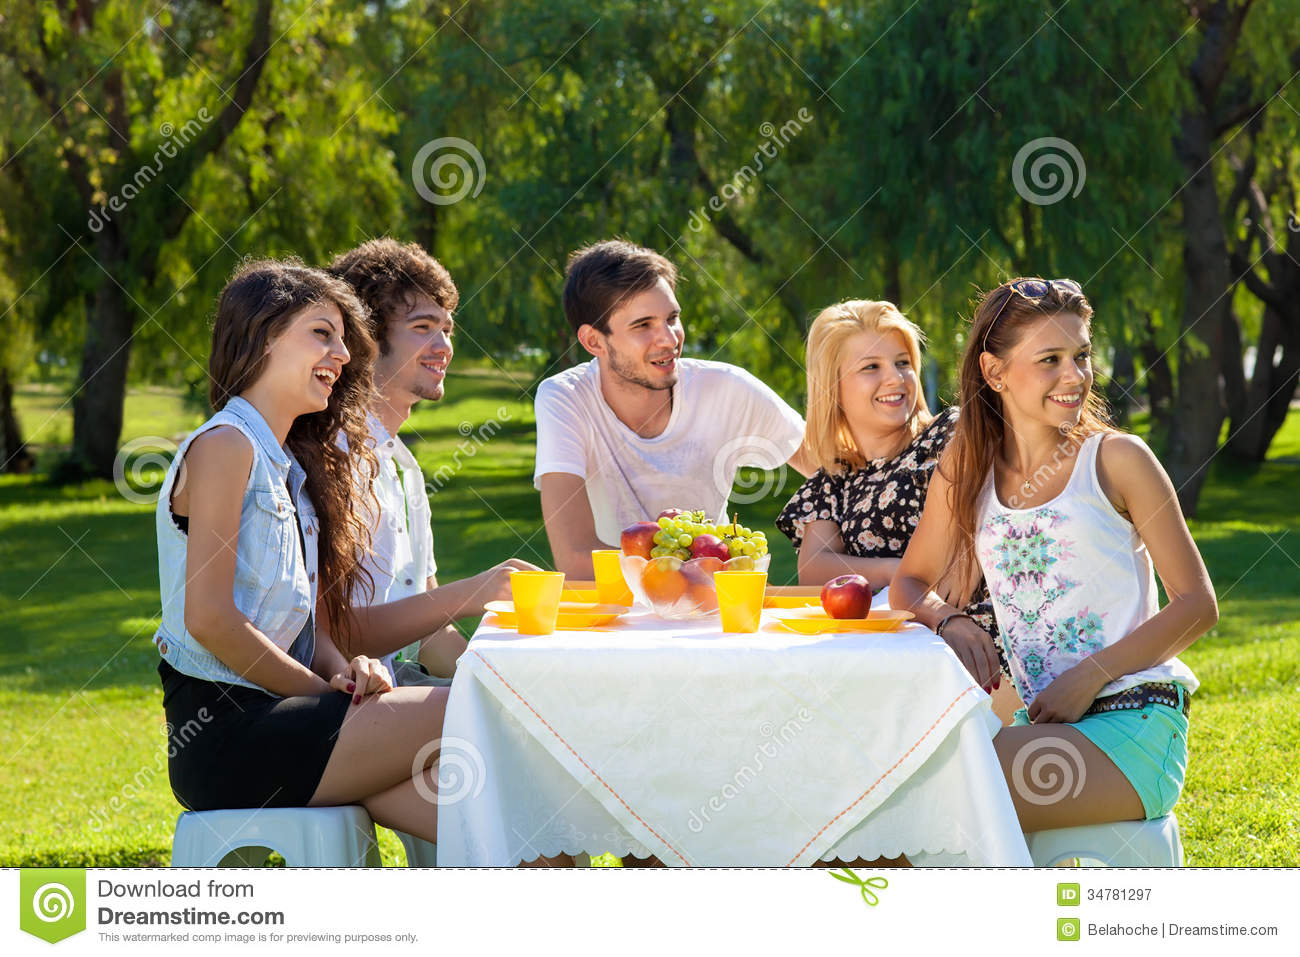 Group Of Young Friends Having A Picnic Stock Image - Image ...